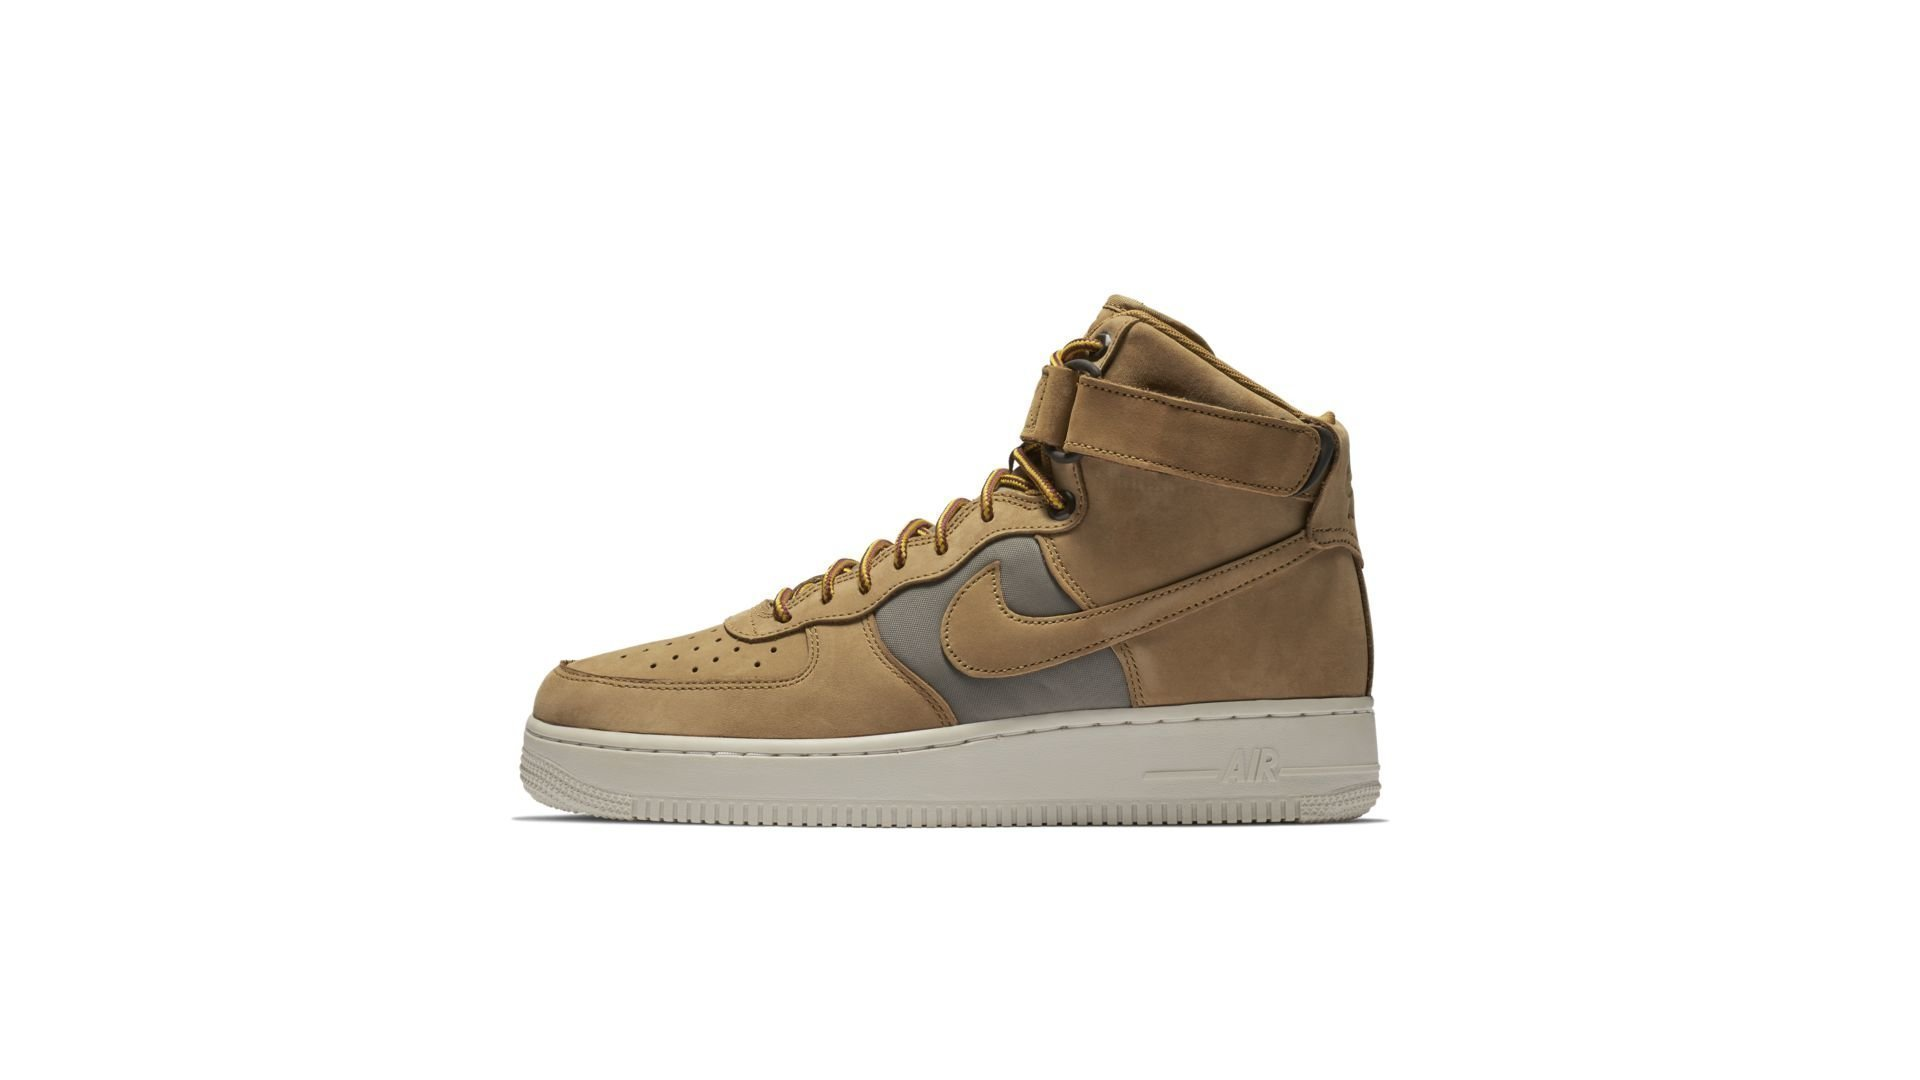 Nike Air Force 1 High Premier Beef and Broccoli Pack Wheat (525317-700)